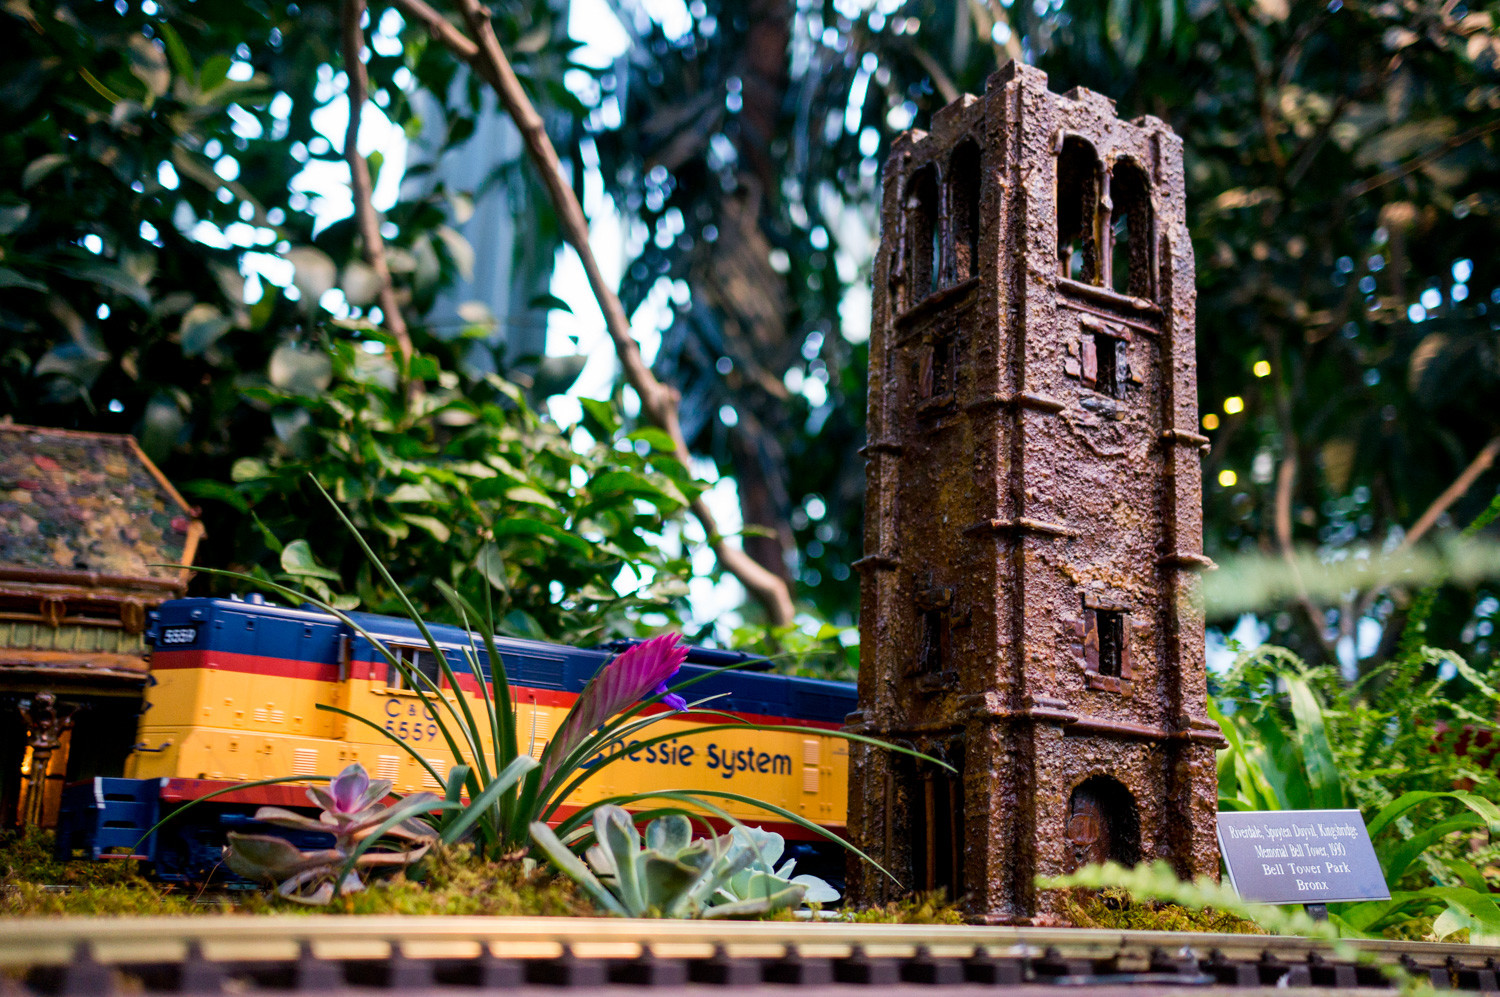 A model train passes by a replica of the Riverdale Monument at the New York Botanical Garden's Holiday Train Show. The show is an annual tradition that brings together the work of the company Applied Imagination, whose artists and technicians create replicas of famous New York buildings, statues and structures from natural materials.